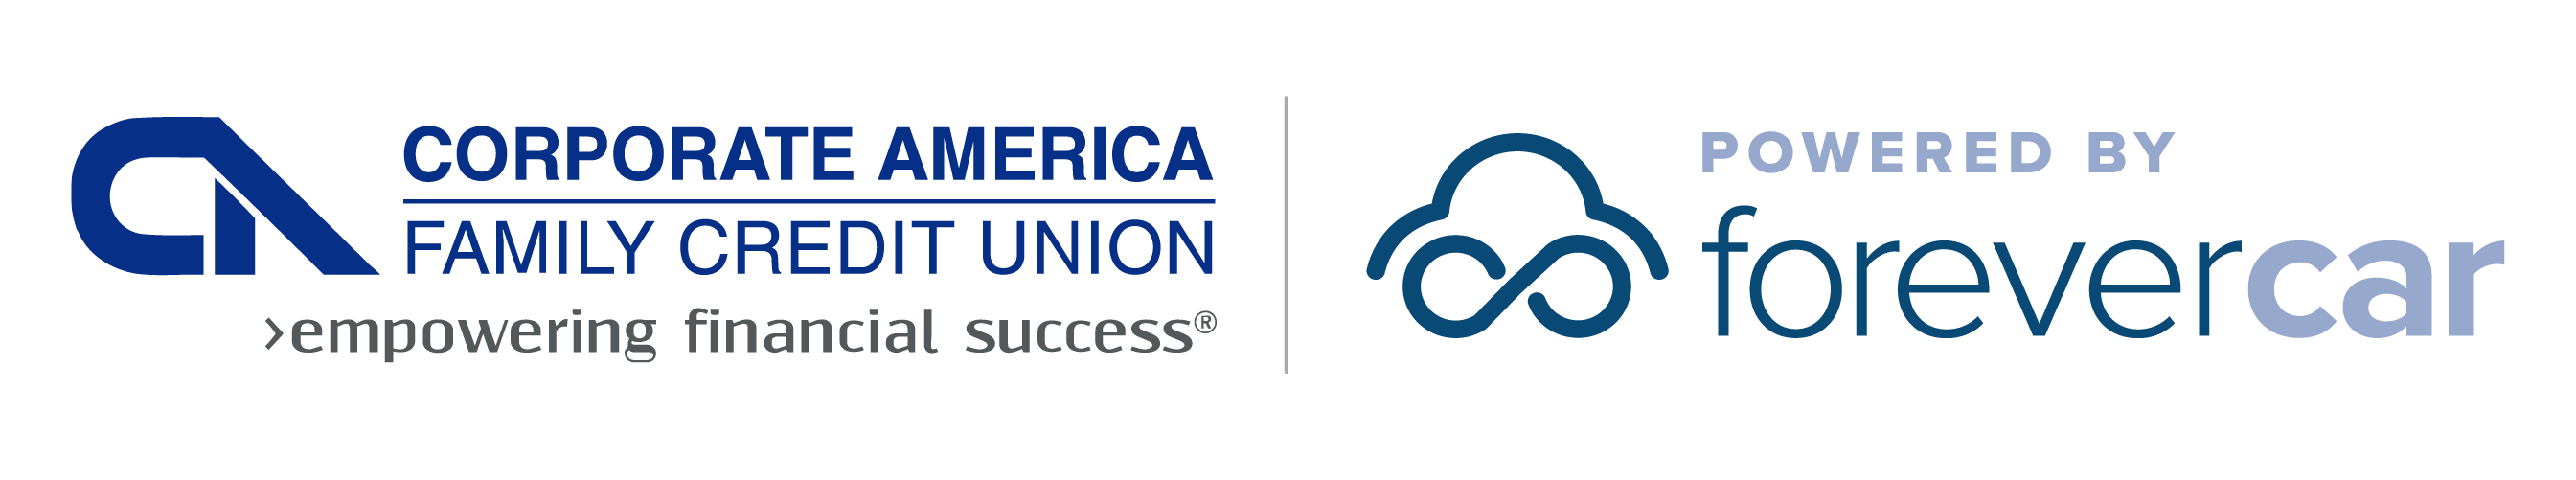 Corporate America Family Credit Union Powered by ForeverCar Logo